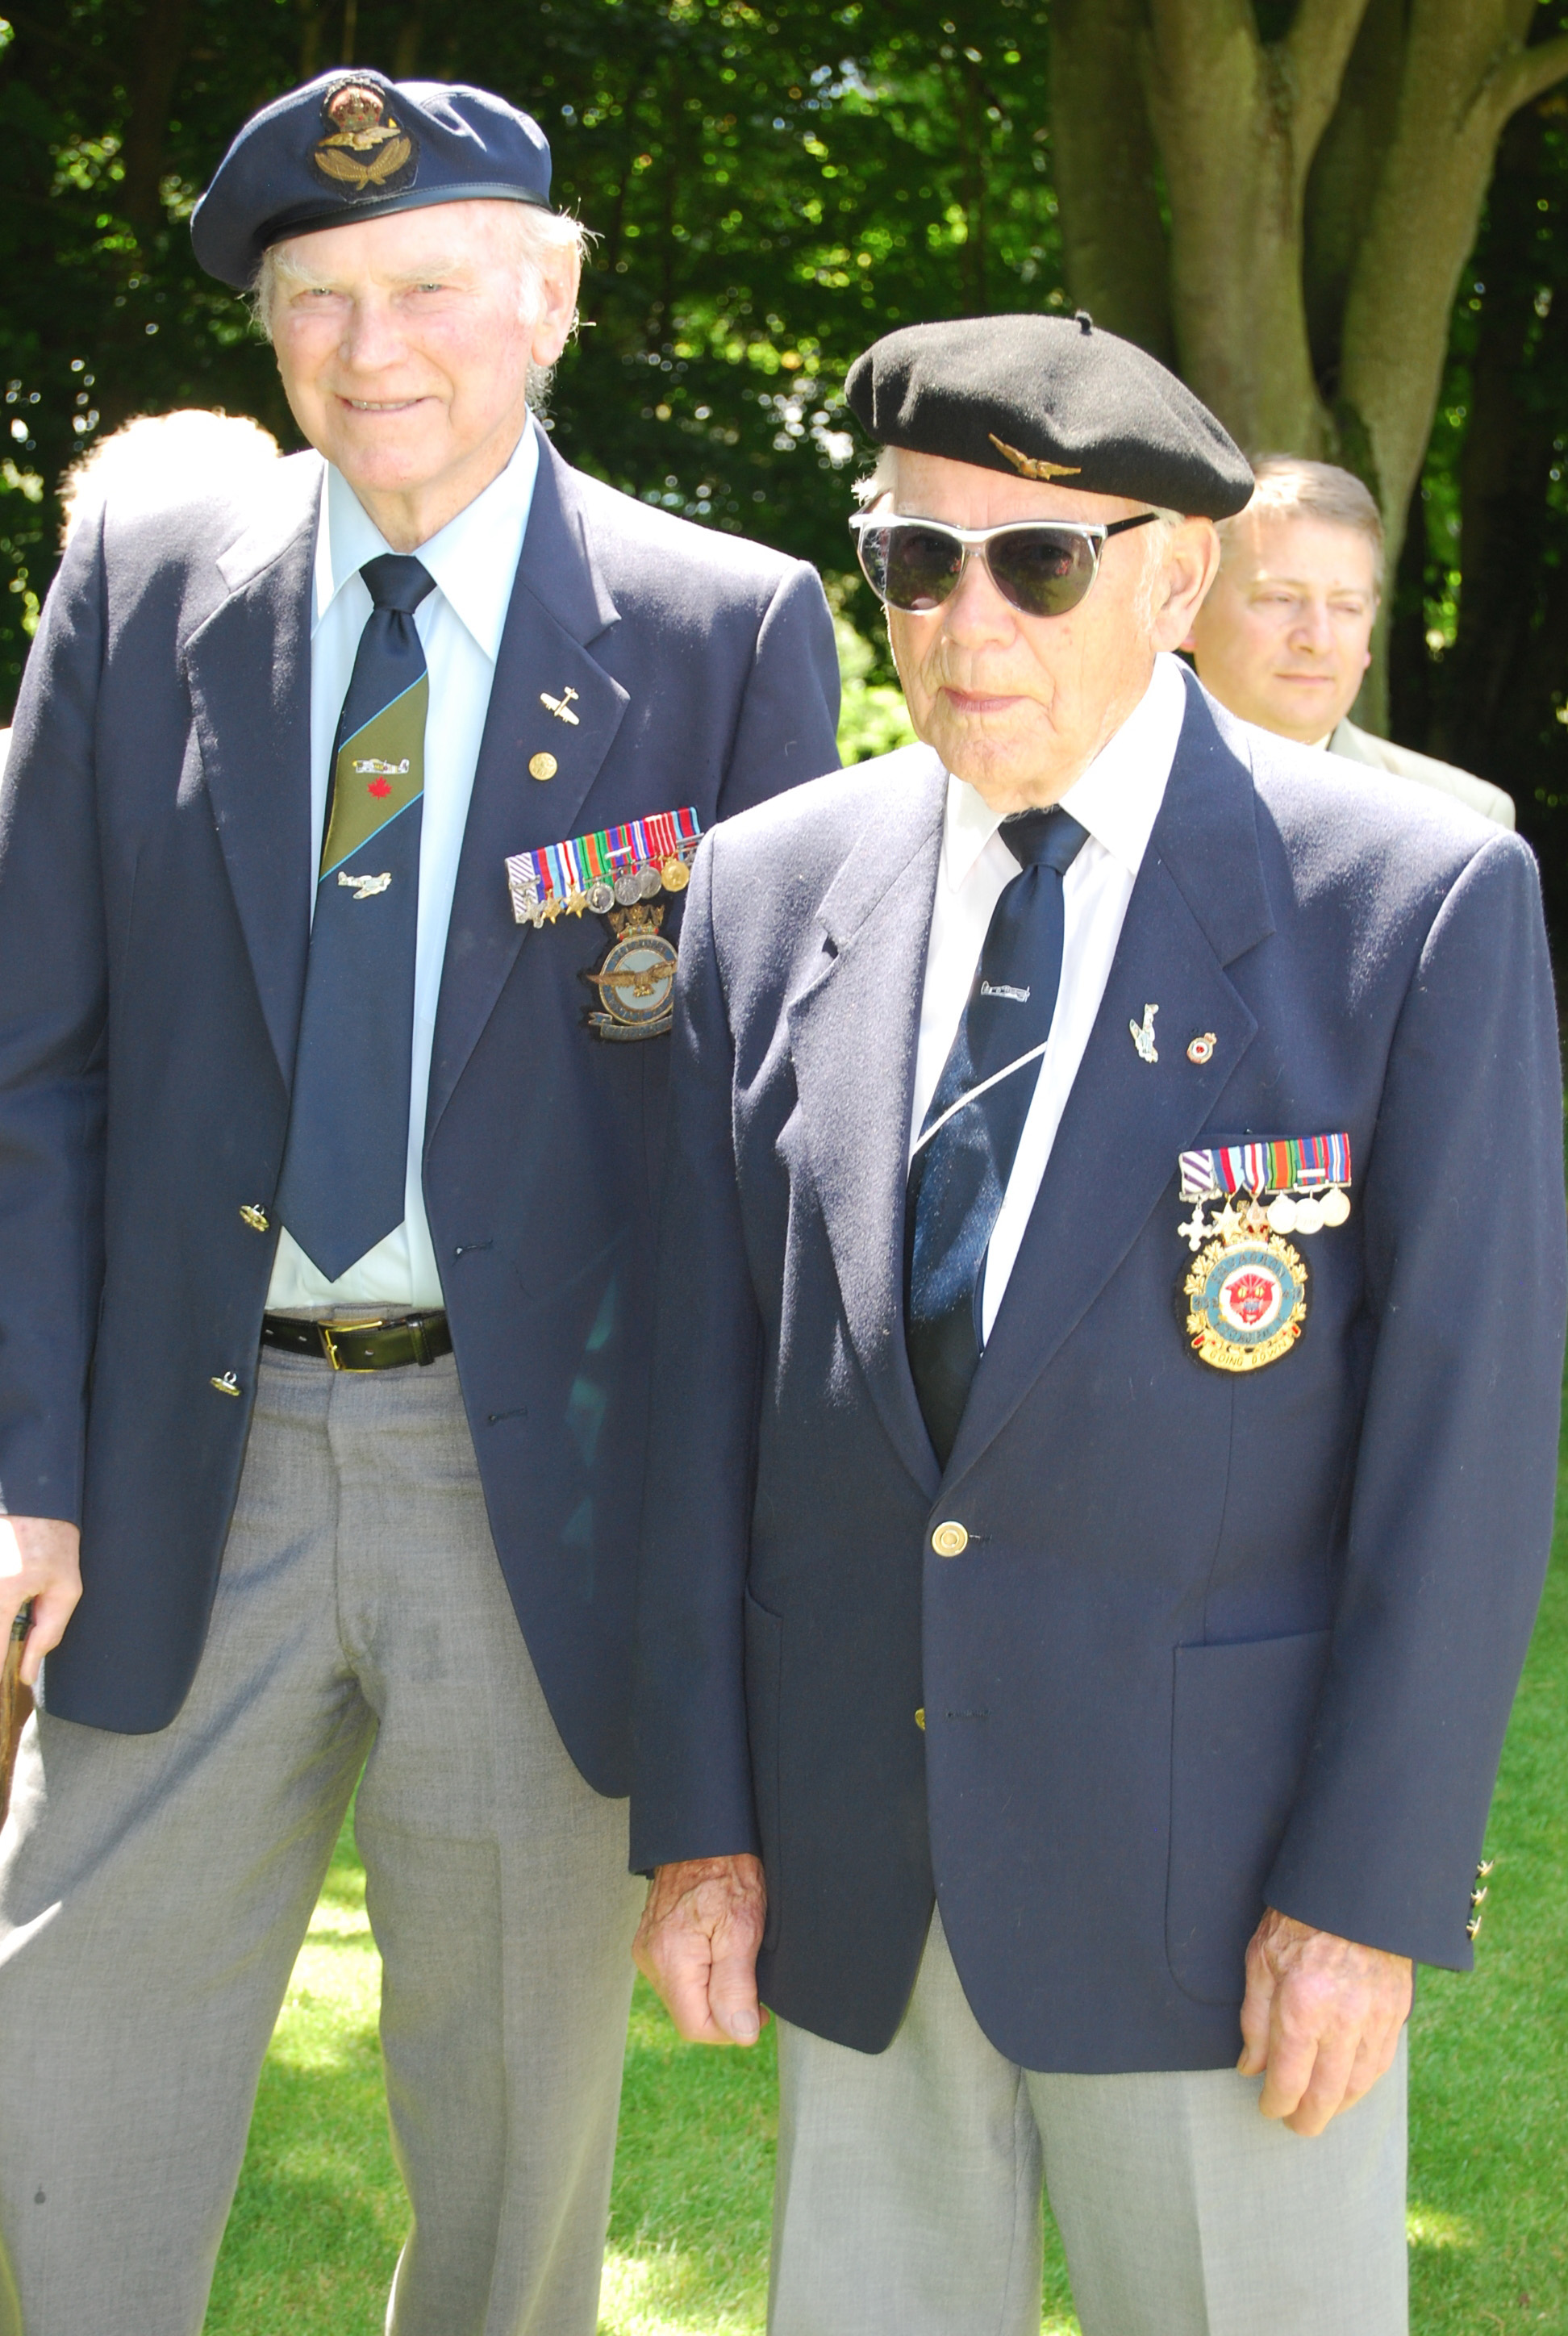 Harry Hardy (left) and Bob Spooner, two veteran Typhoon pilots, each 95 years old, travelled to Beny-sur-Mer for commemorative ceremonies marking the anniversary of Operation OVERLORD and the beginning of the Normandy campaign.